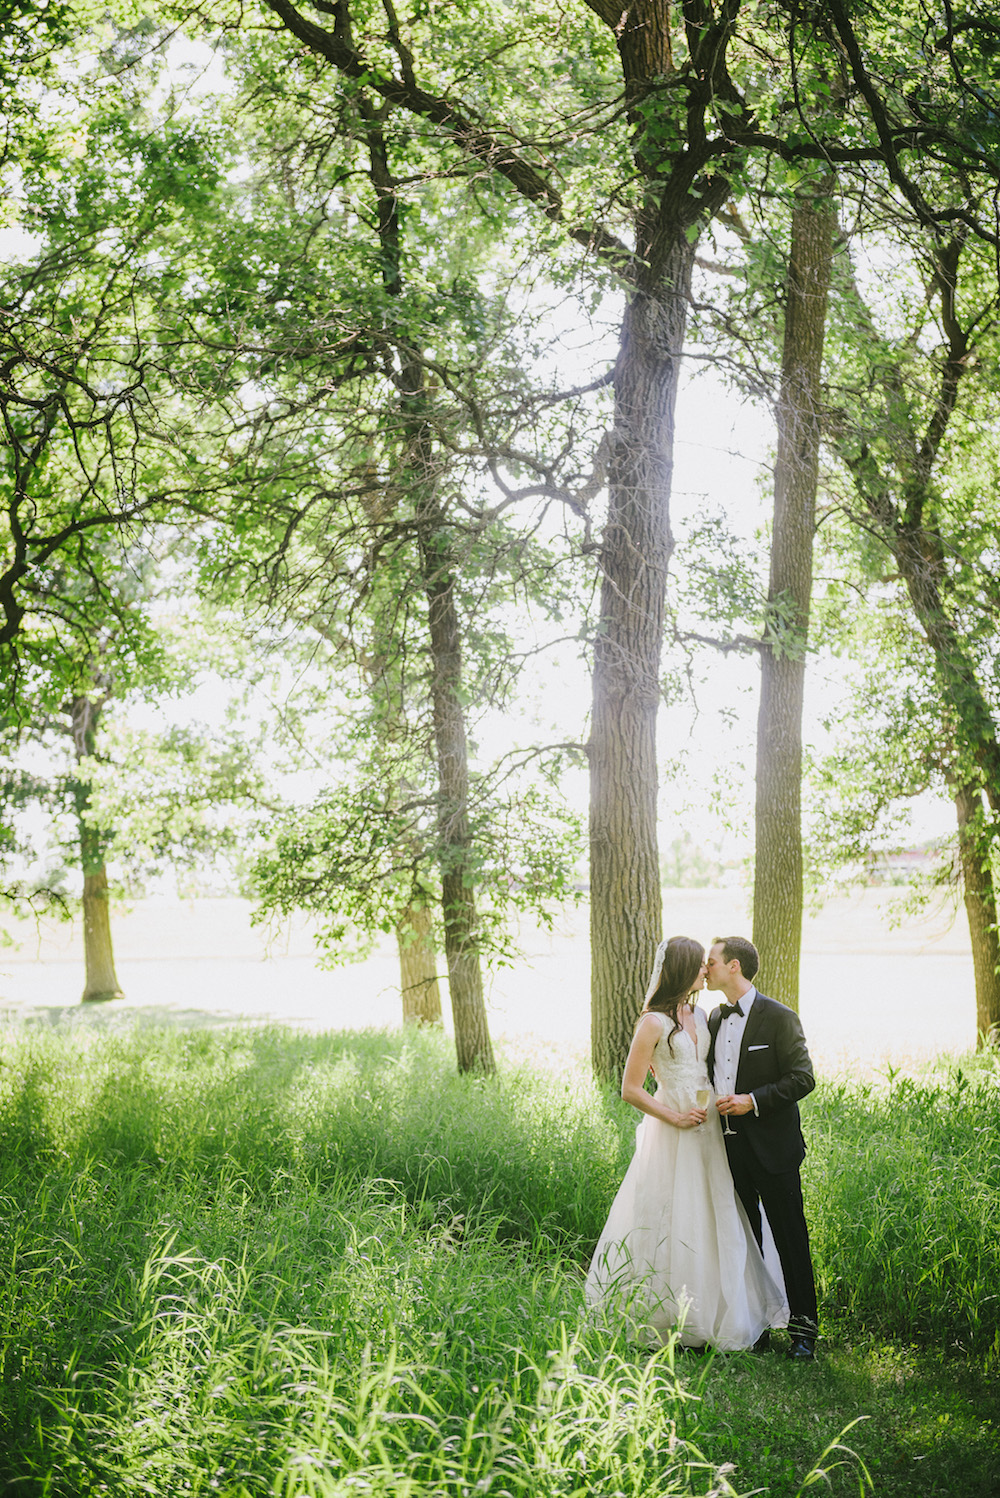 Outdoor Wedding Photos - Winnipeg Weddings